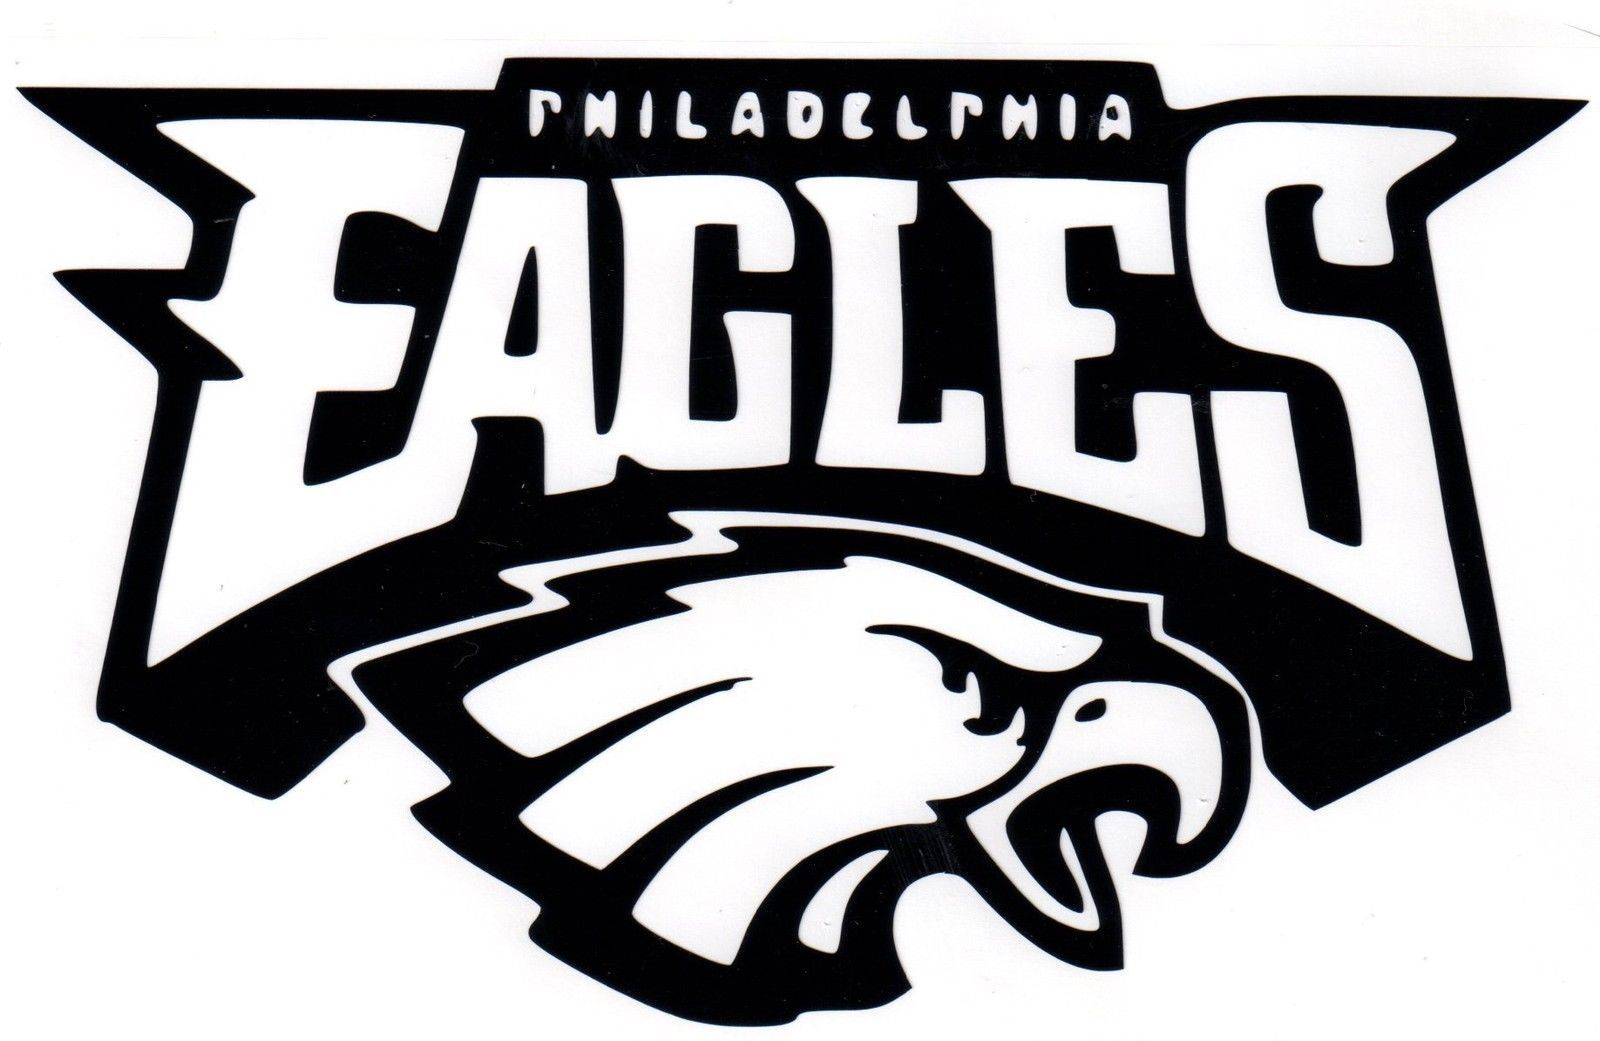 philadelphia eagles coloring pages Pin by Clark Burdick on quilts | Pinterest | Eagles, Philadelphia  philadelphia eagles coloring pages